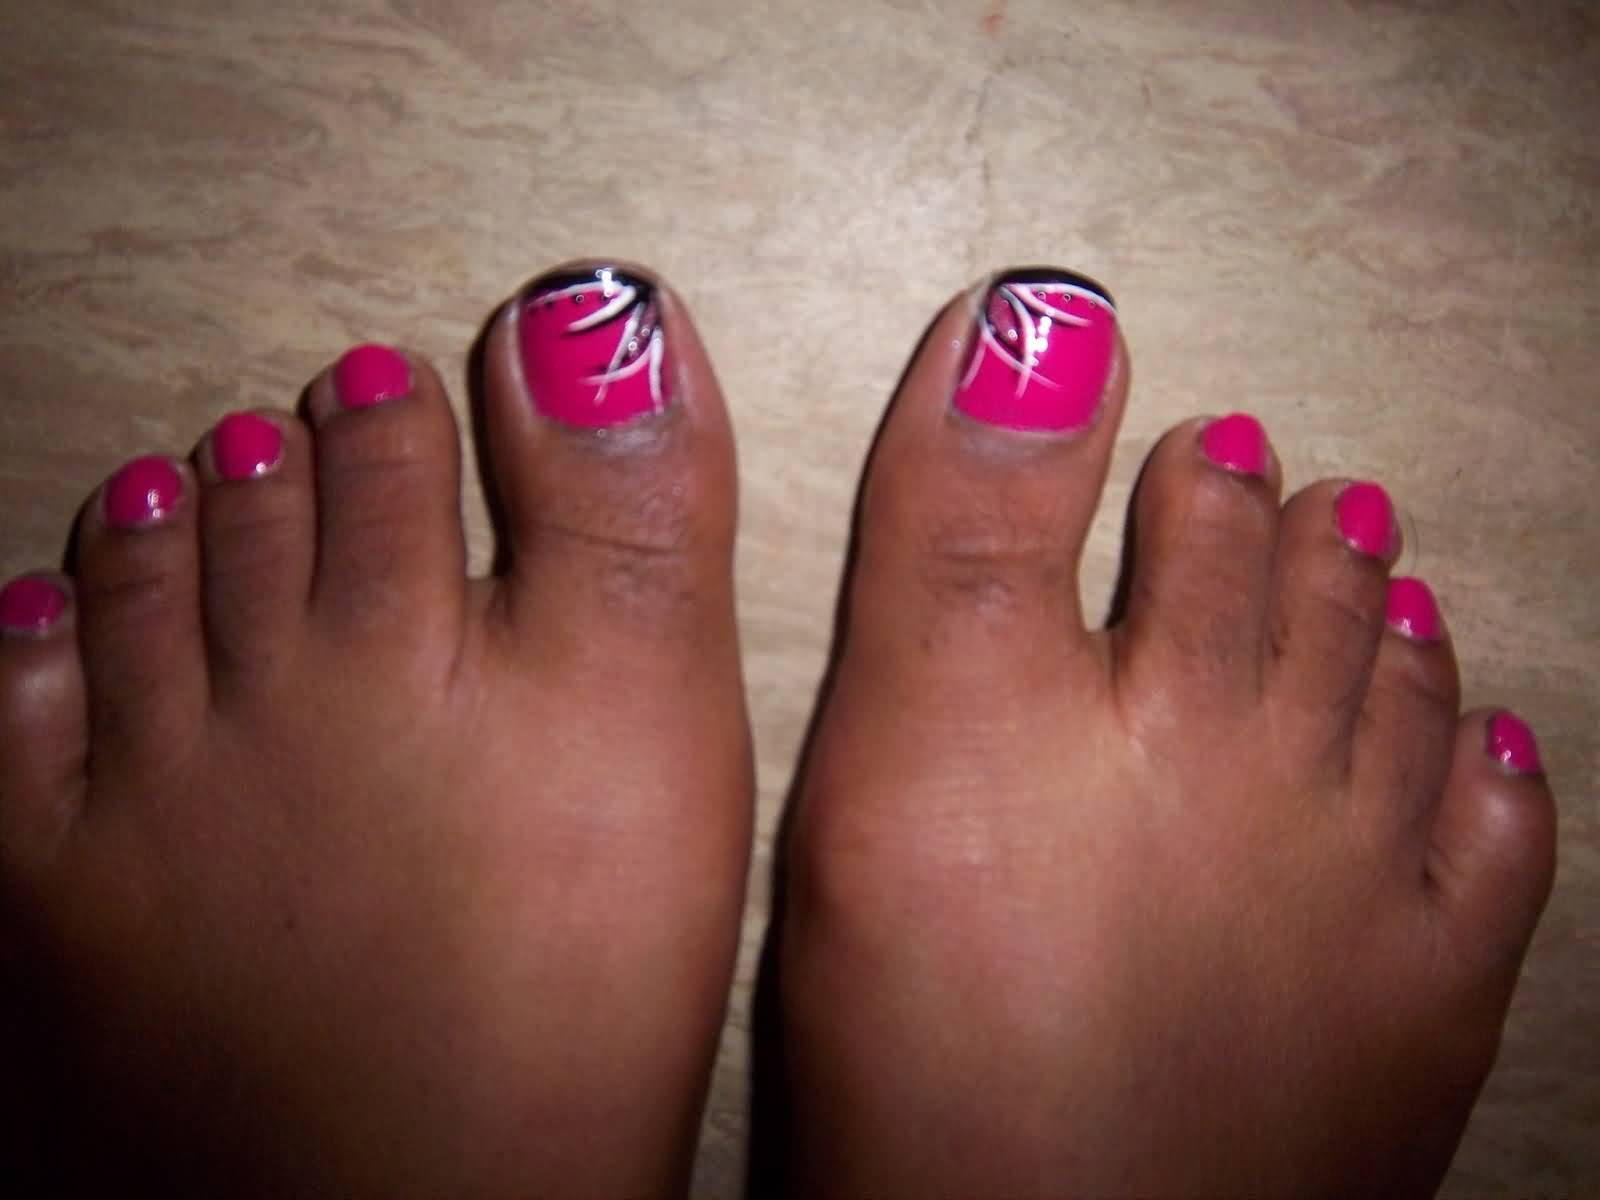 Hot Pink Toe Nail Art With Black Tip And Stripes Design